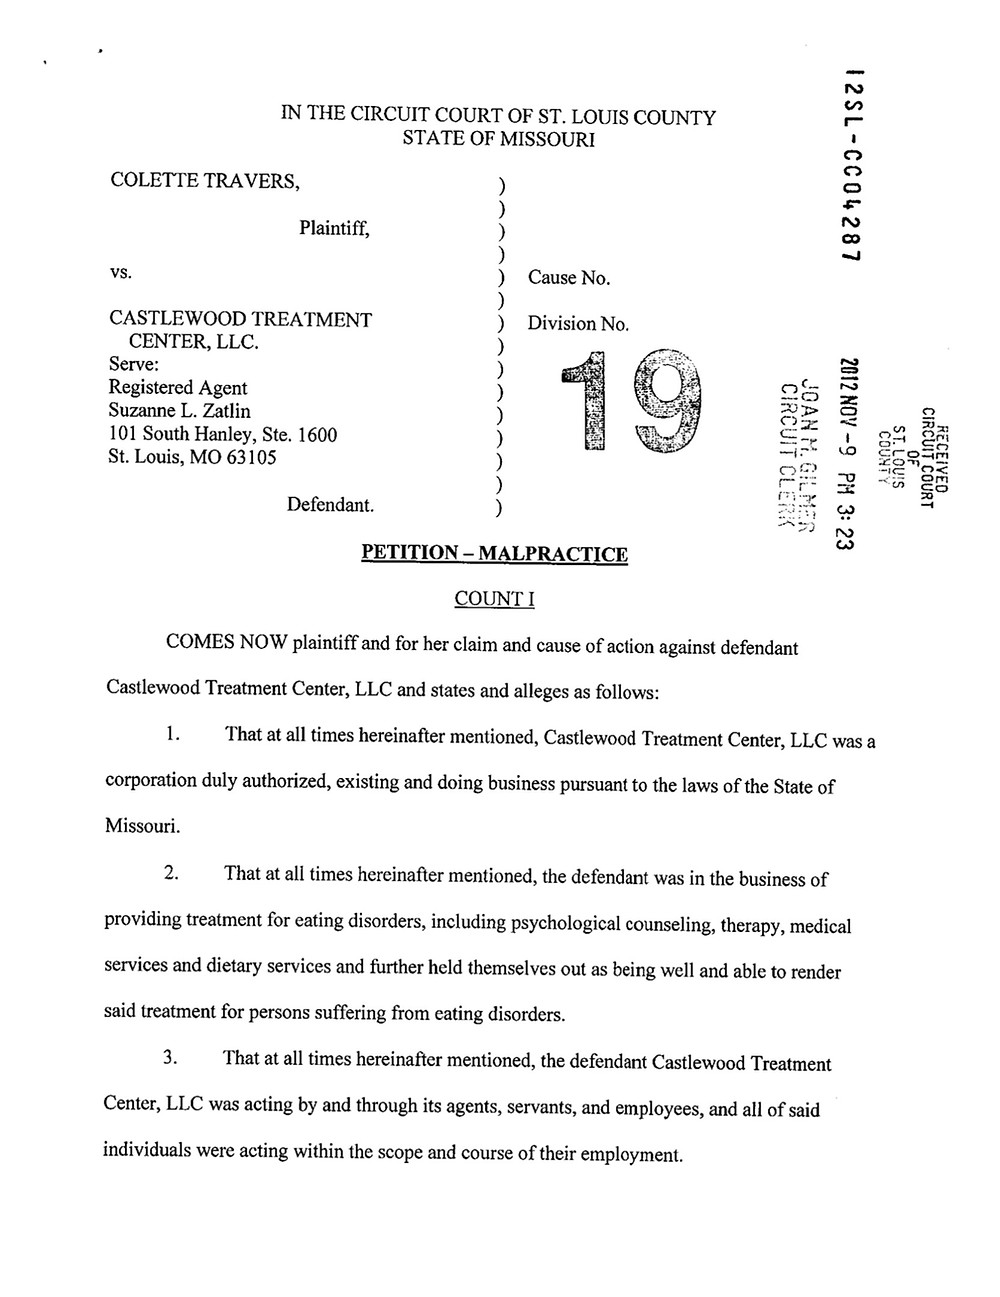 Castlewood Treatment Center Lawsuit #4 - Colette Travers